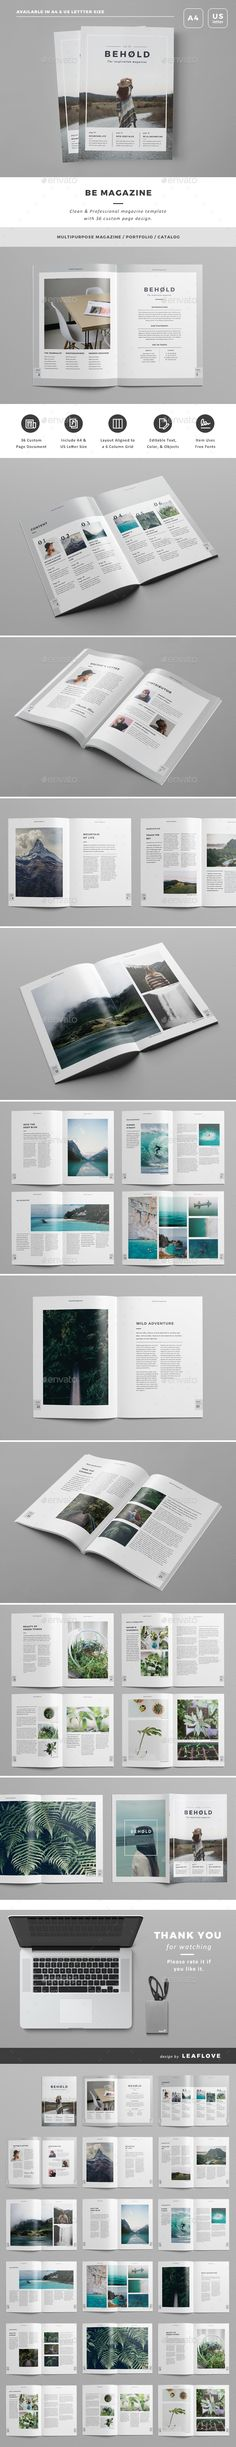 Be Magazine - Magazines Print Templates Magazine Cover Template, Page Layout Design, Booklet Design, Publication Design, Corporate Design, Print Templates, Magazine Design, Editorial Design, Magazines